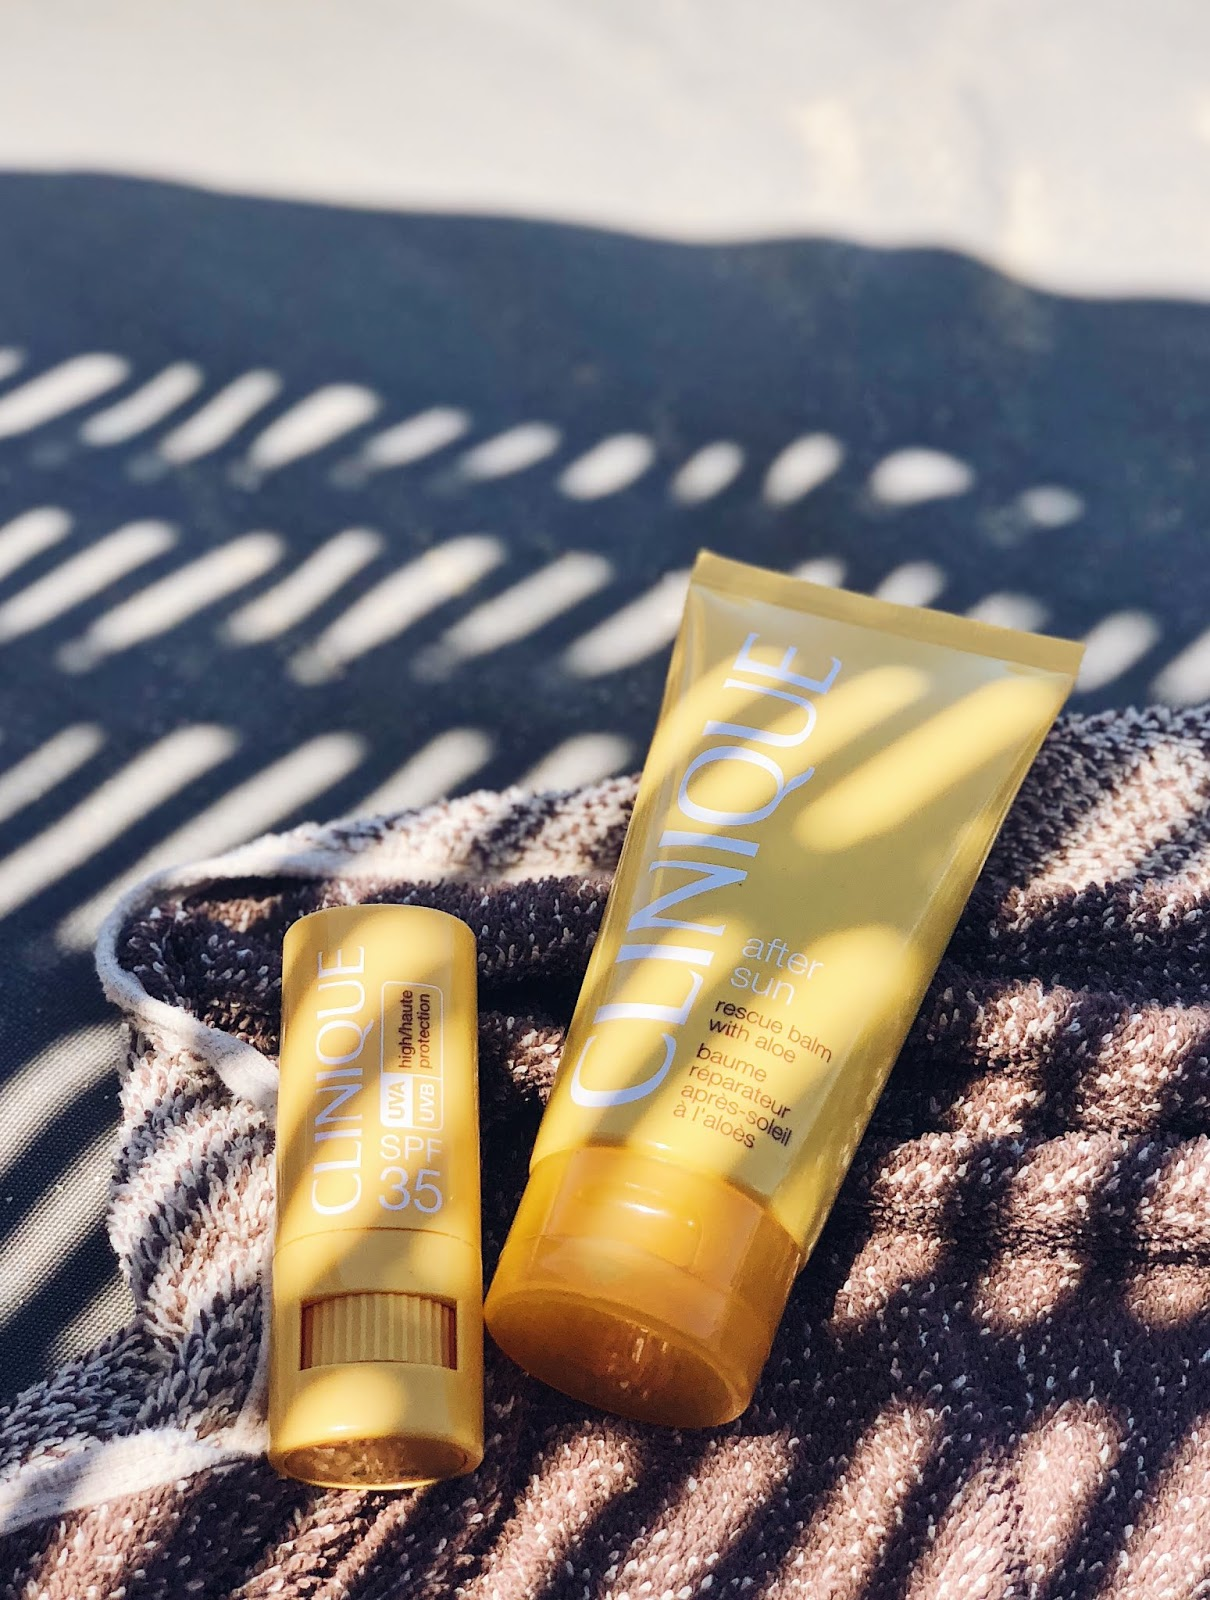 clinique spf review, clinique sun care review, clinique 2019 review, clinique after sun review, clinique spf stick review, good spf products, spf in beauty